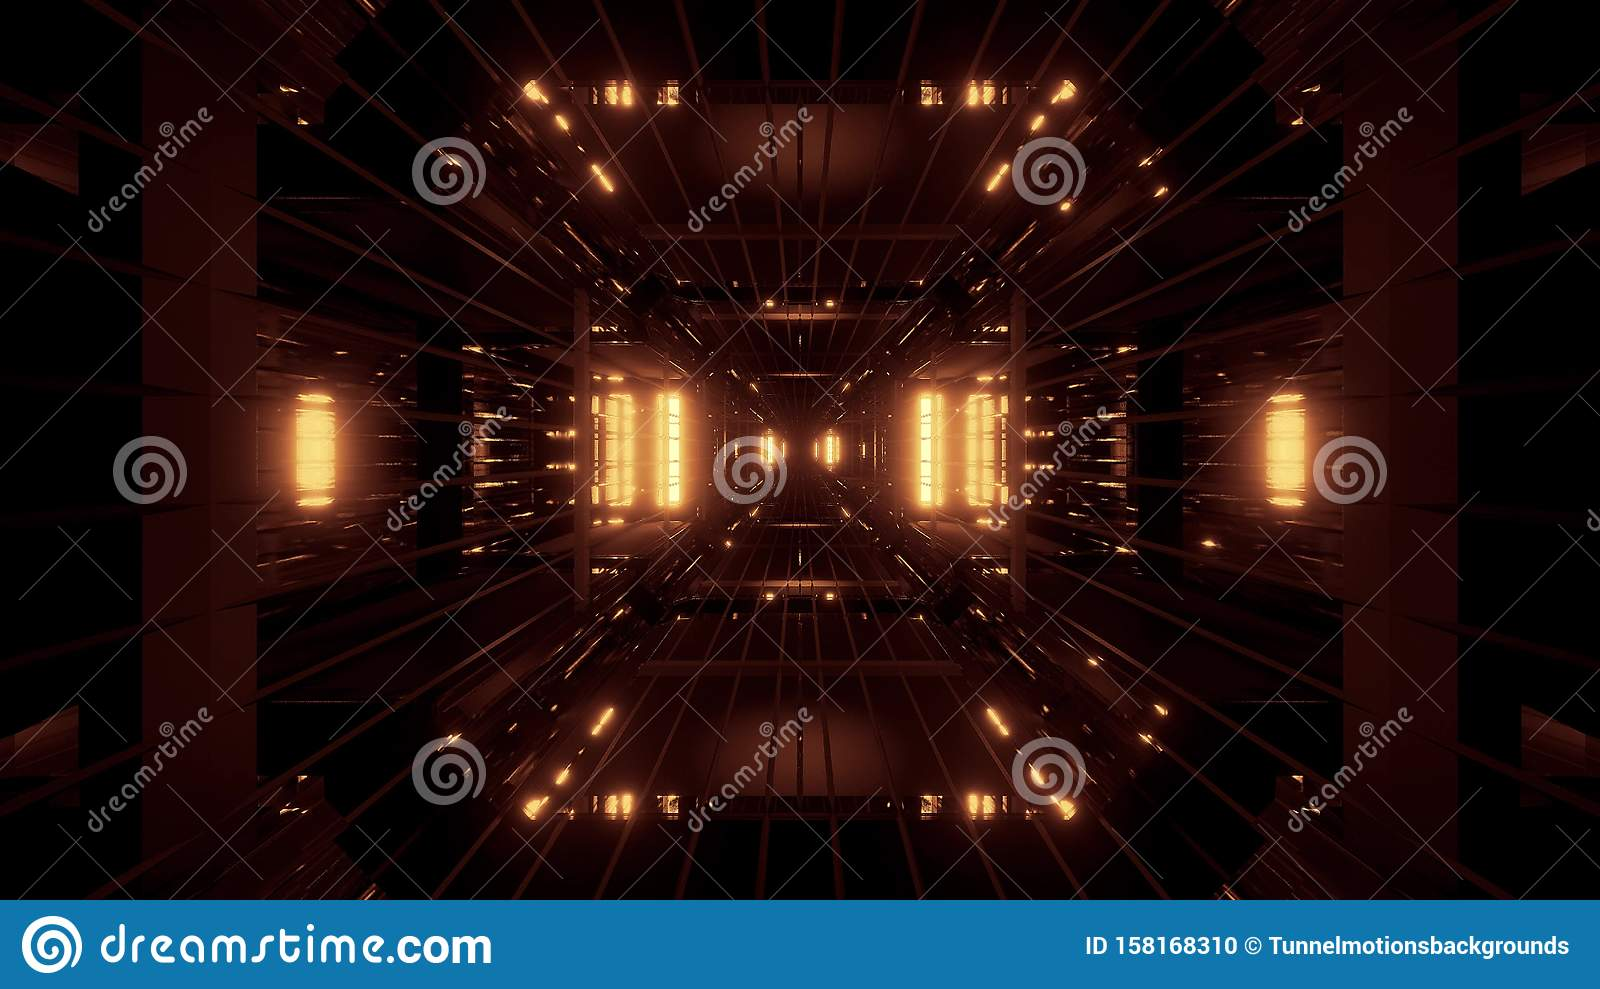 Glowing Futuritic Sci Fi Tunnel With Wireframe 3d Rendering Wallpaper Backgrounds Stock Illustration Illustration Of Dark Glow 158168310